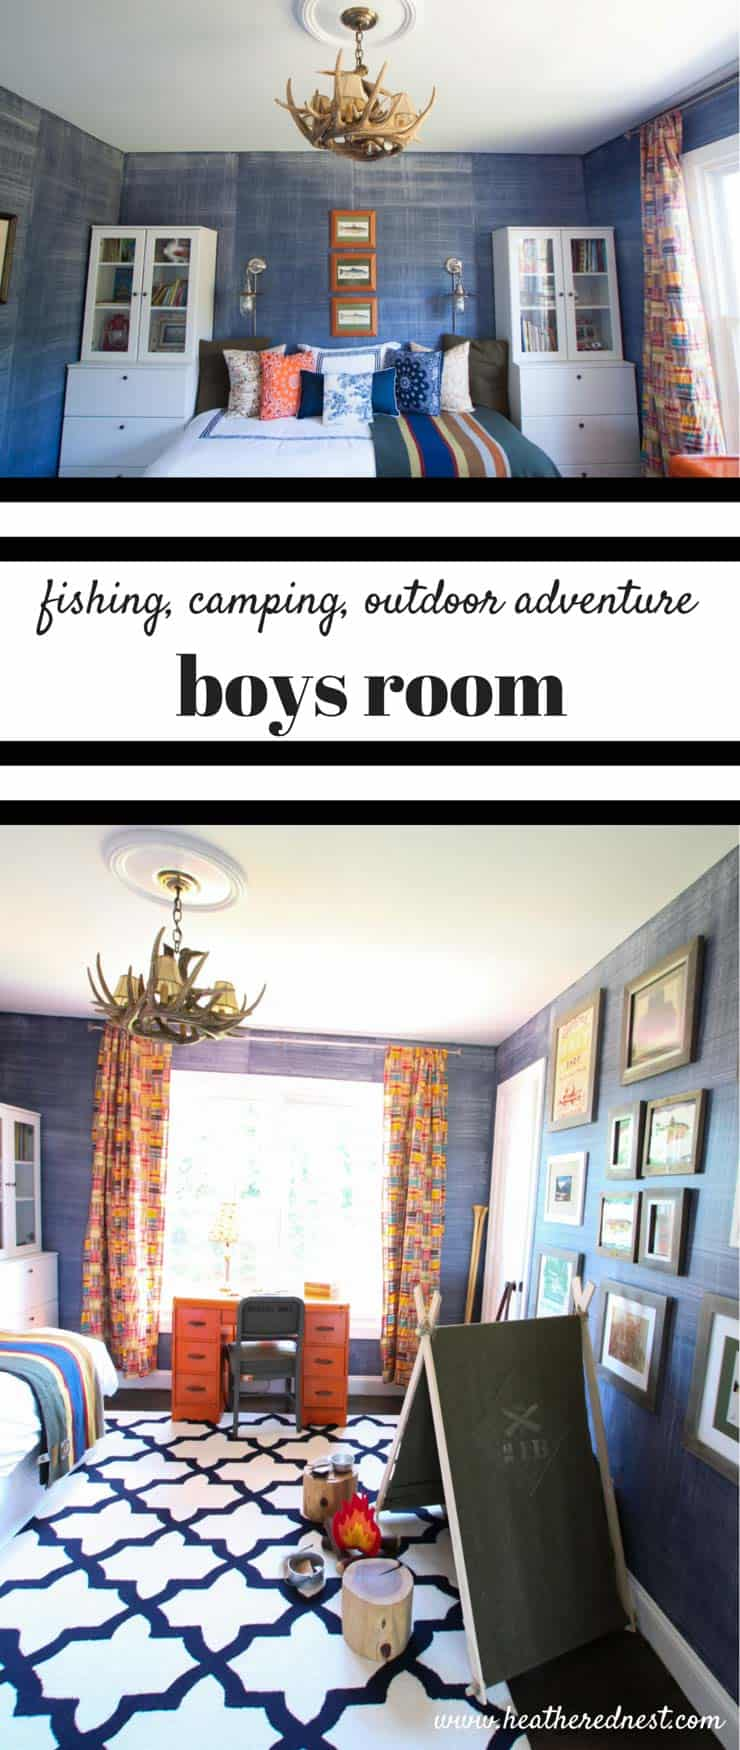 fishing camping outdoor adventure boys room from www.heatherednest.com